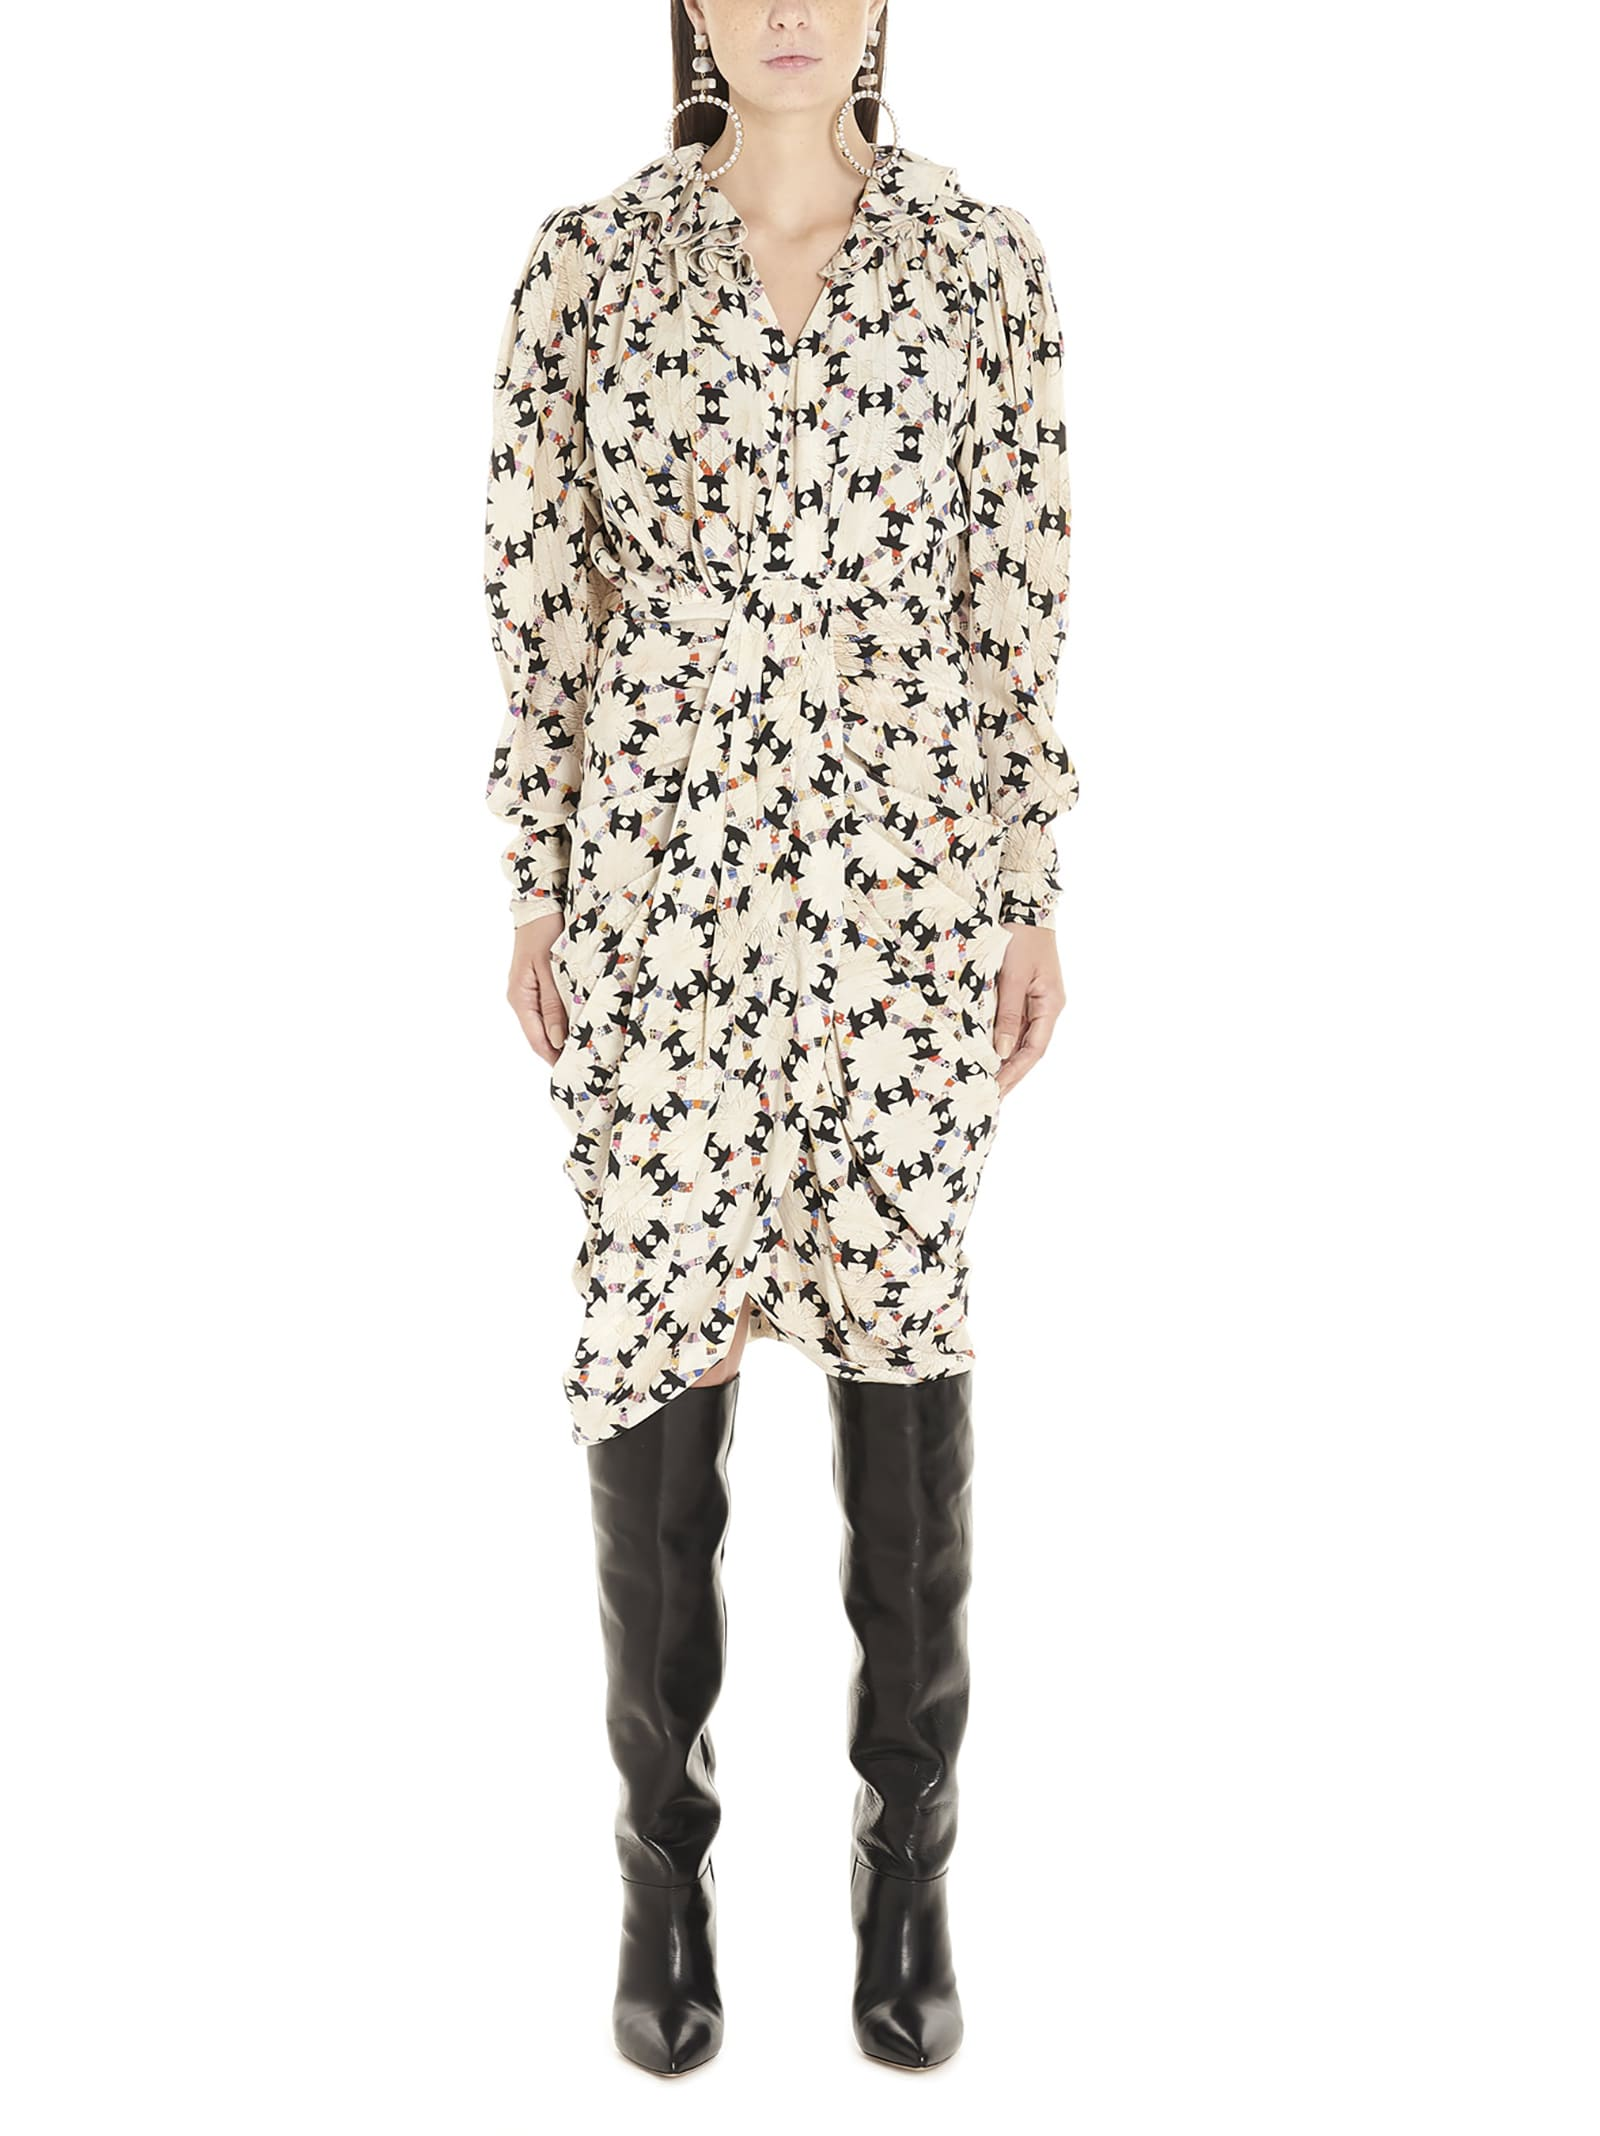 Isabel Marant blandine Dress